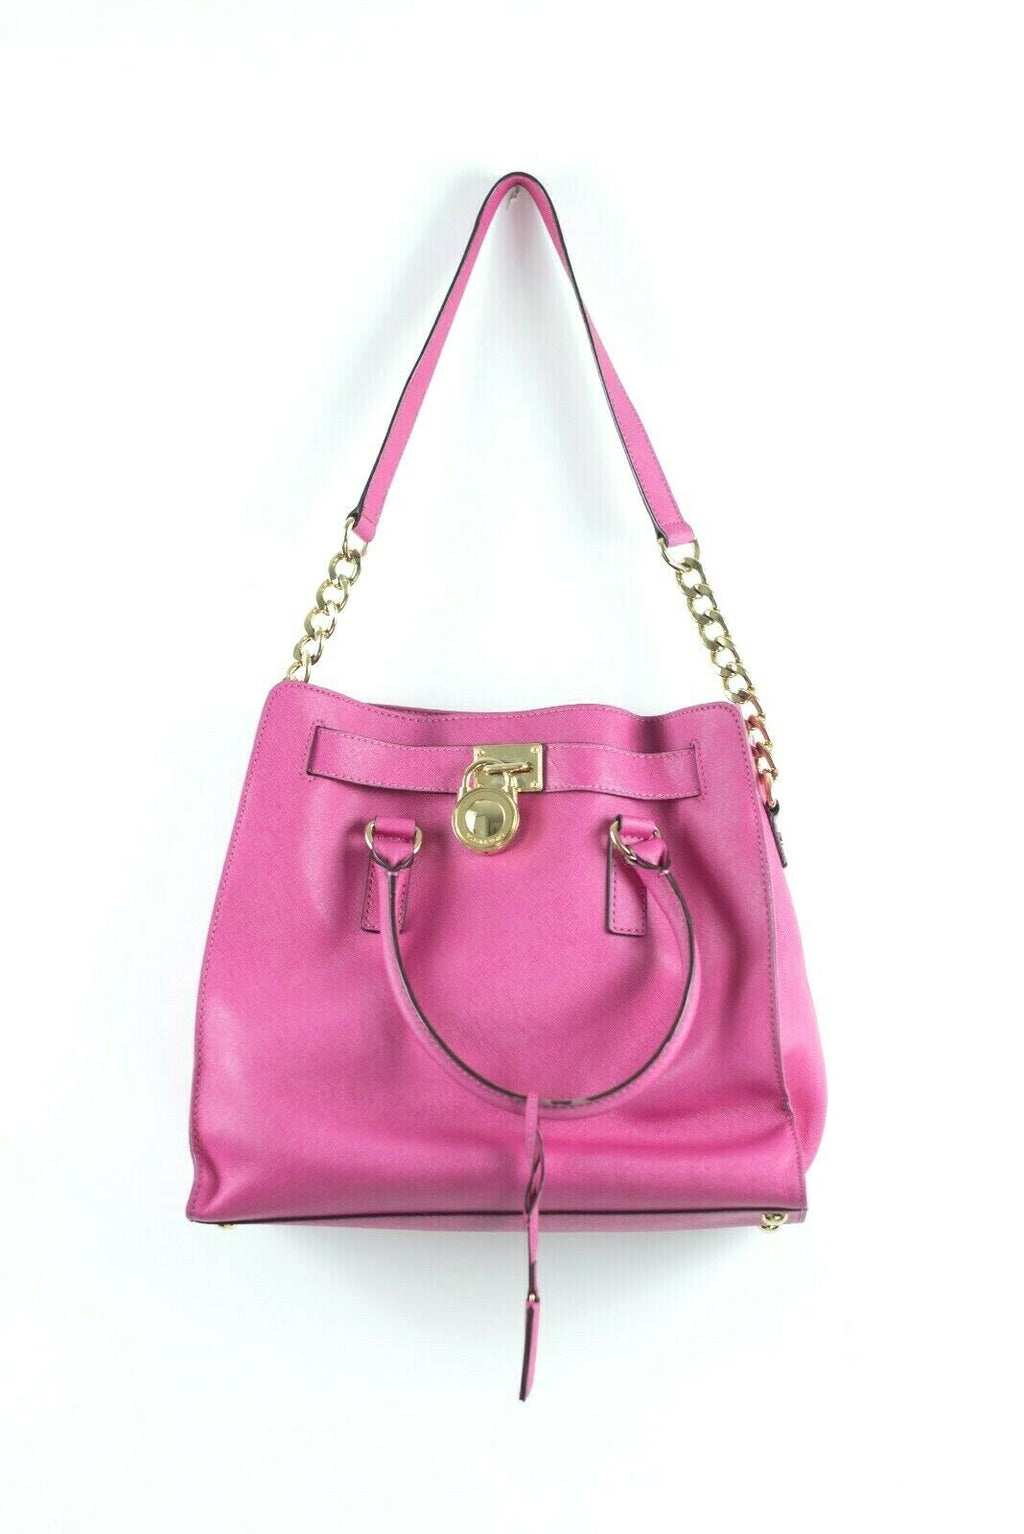 Michael Kors Womens Hot Pink Hamilton Bag Handbag Purse Satchel Neon Leather